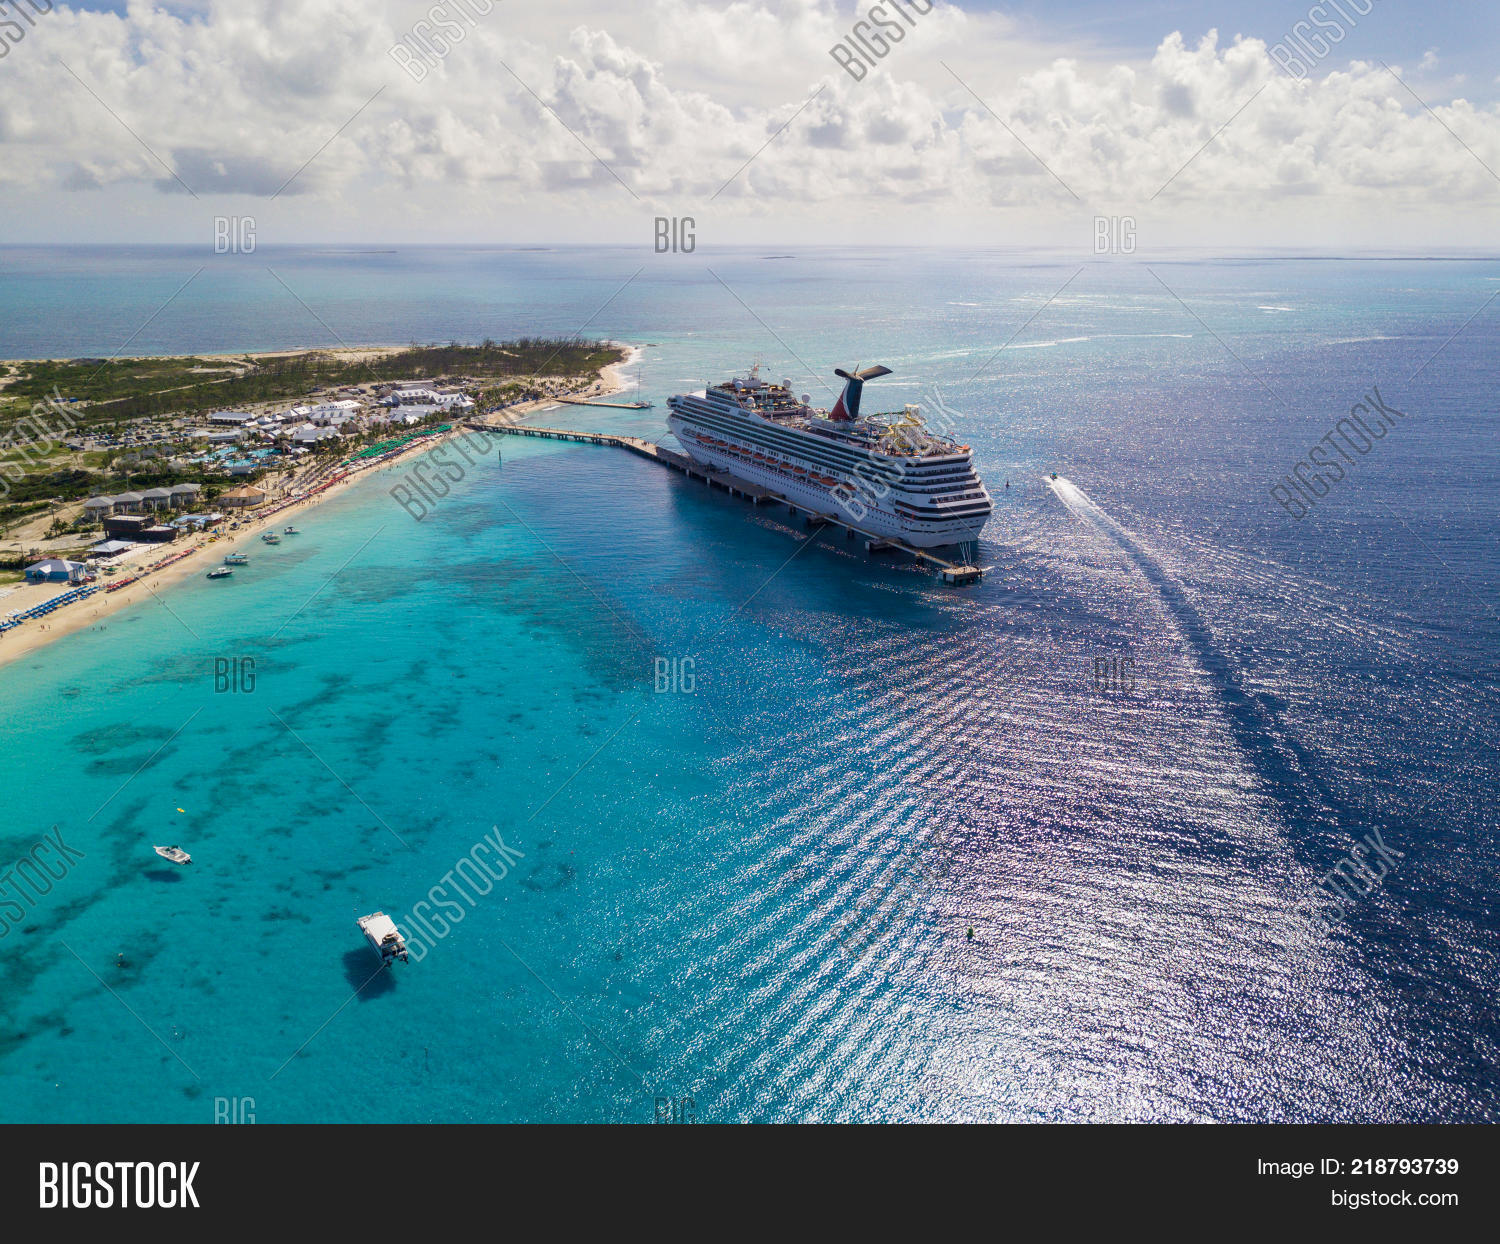 GRAND TURK TURKS CAICOSDECEMBER Image Photo Bigstock - Turks and caicos cruise ship schedule